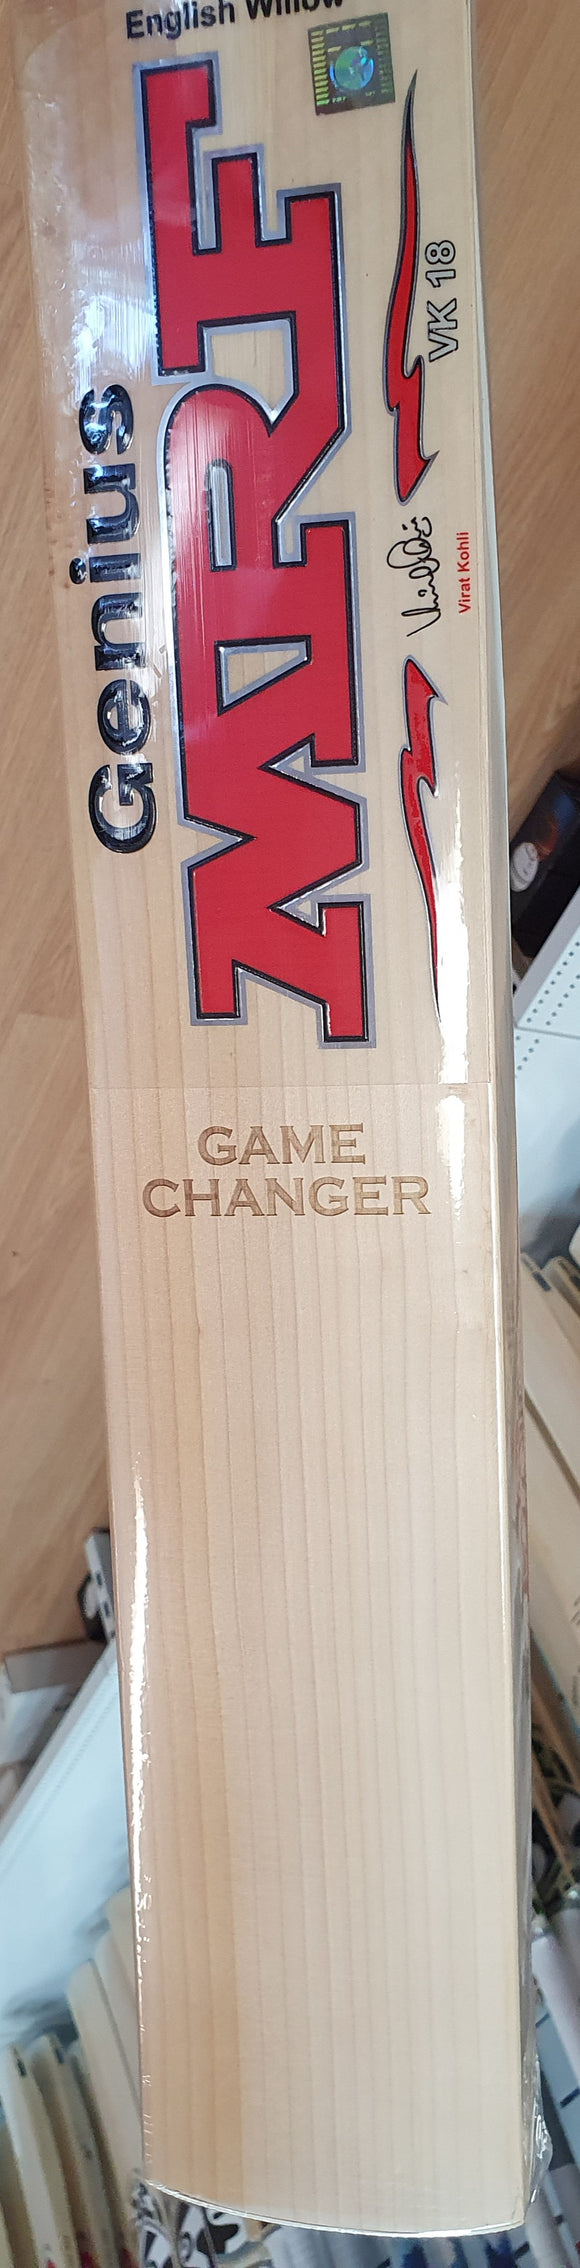 MRF Game Changer English Willow Bat